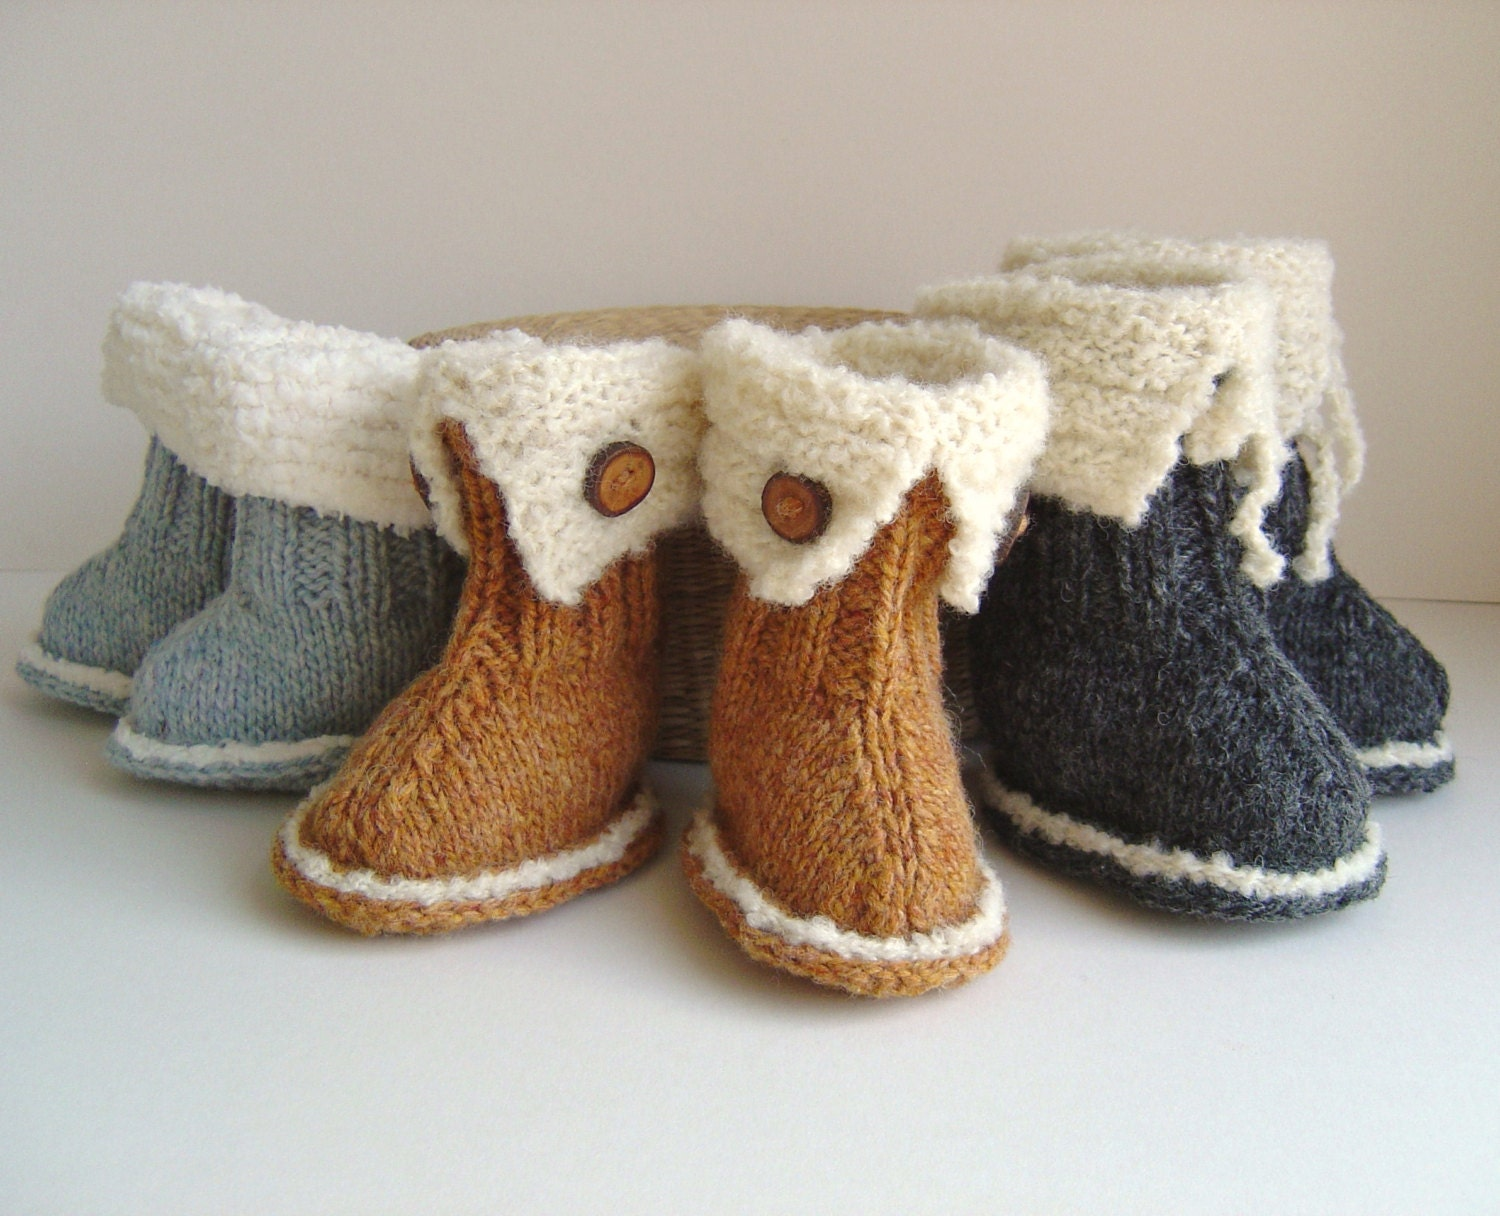 Knitting Pattern Baby Booties Quick And Easy Knitting Tutorial